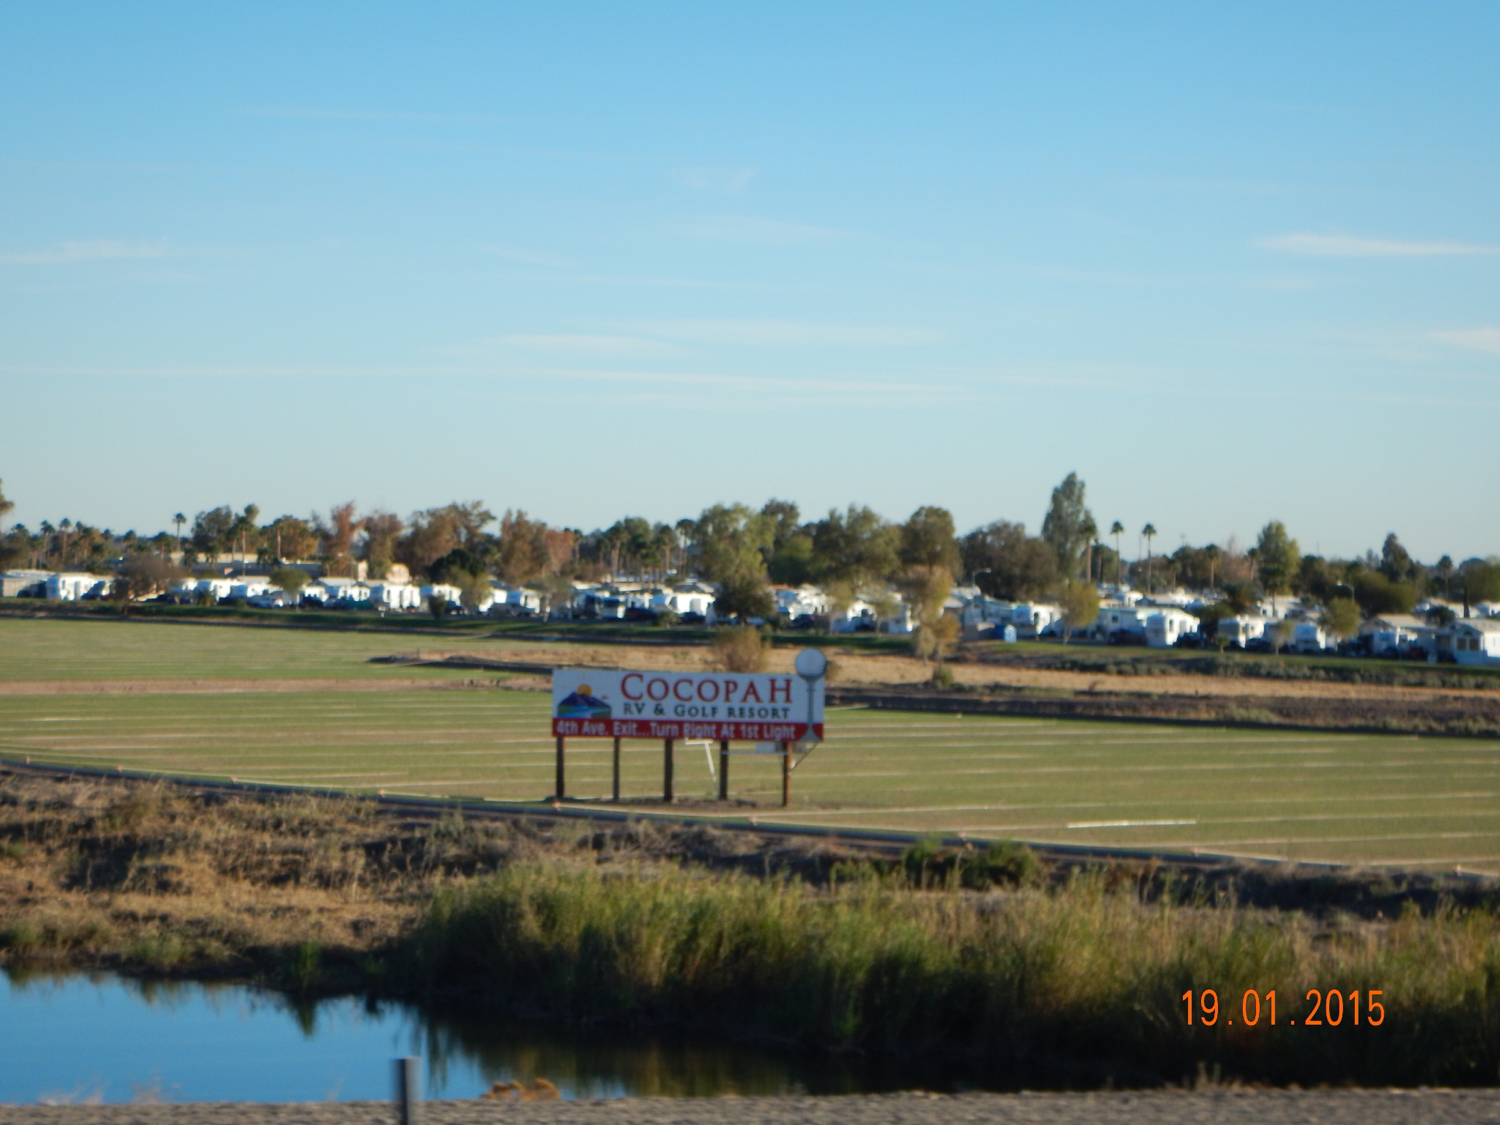 Cocopah RV Golf Resort